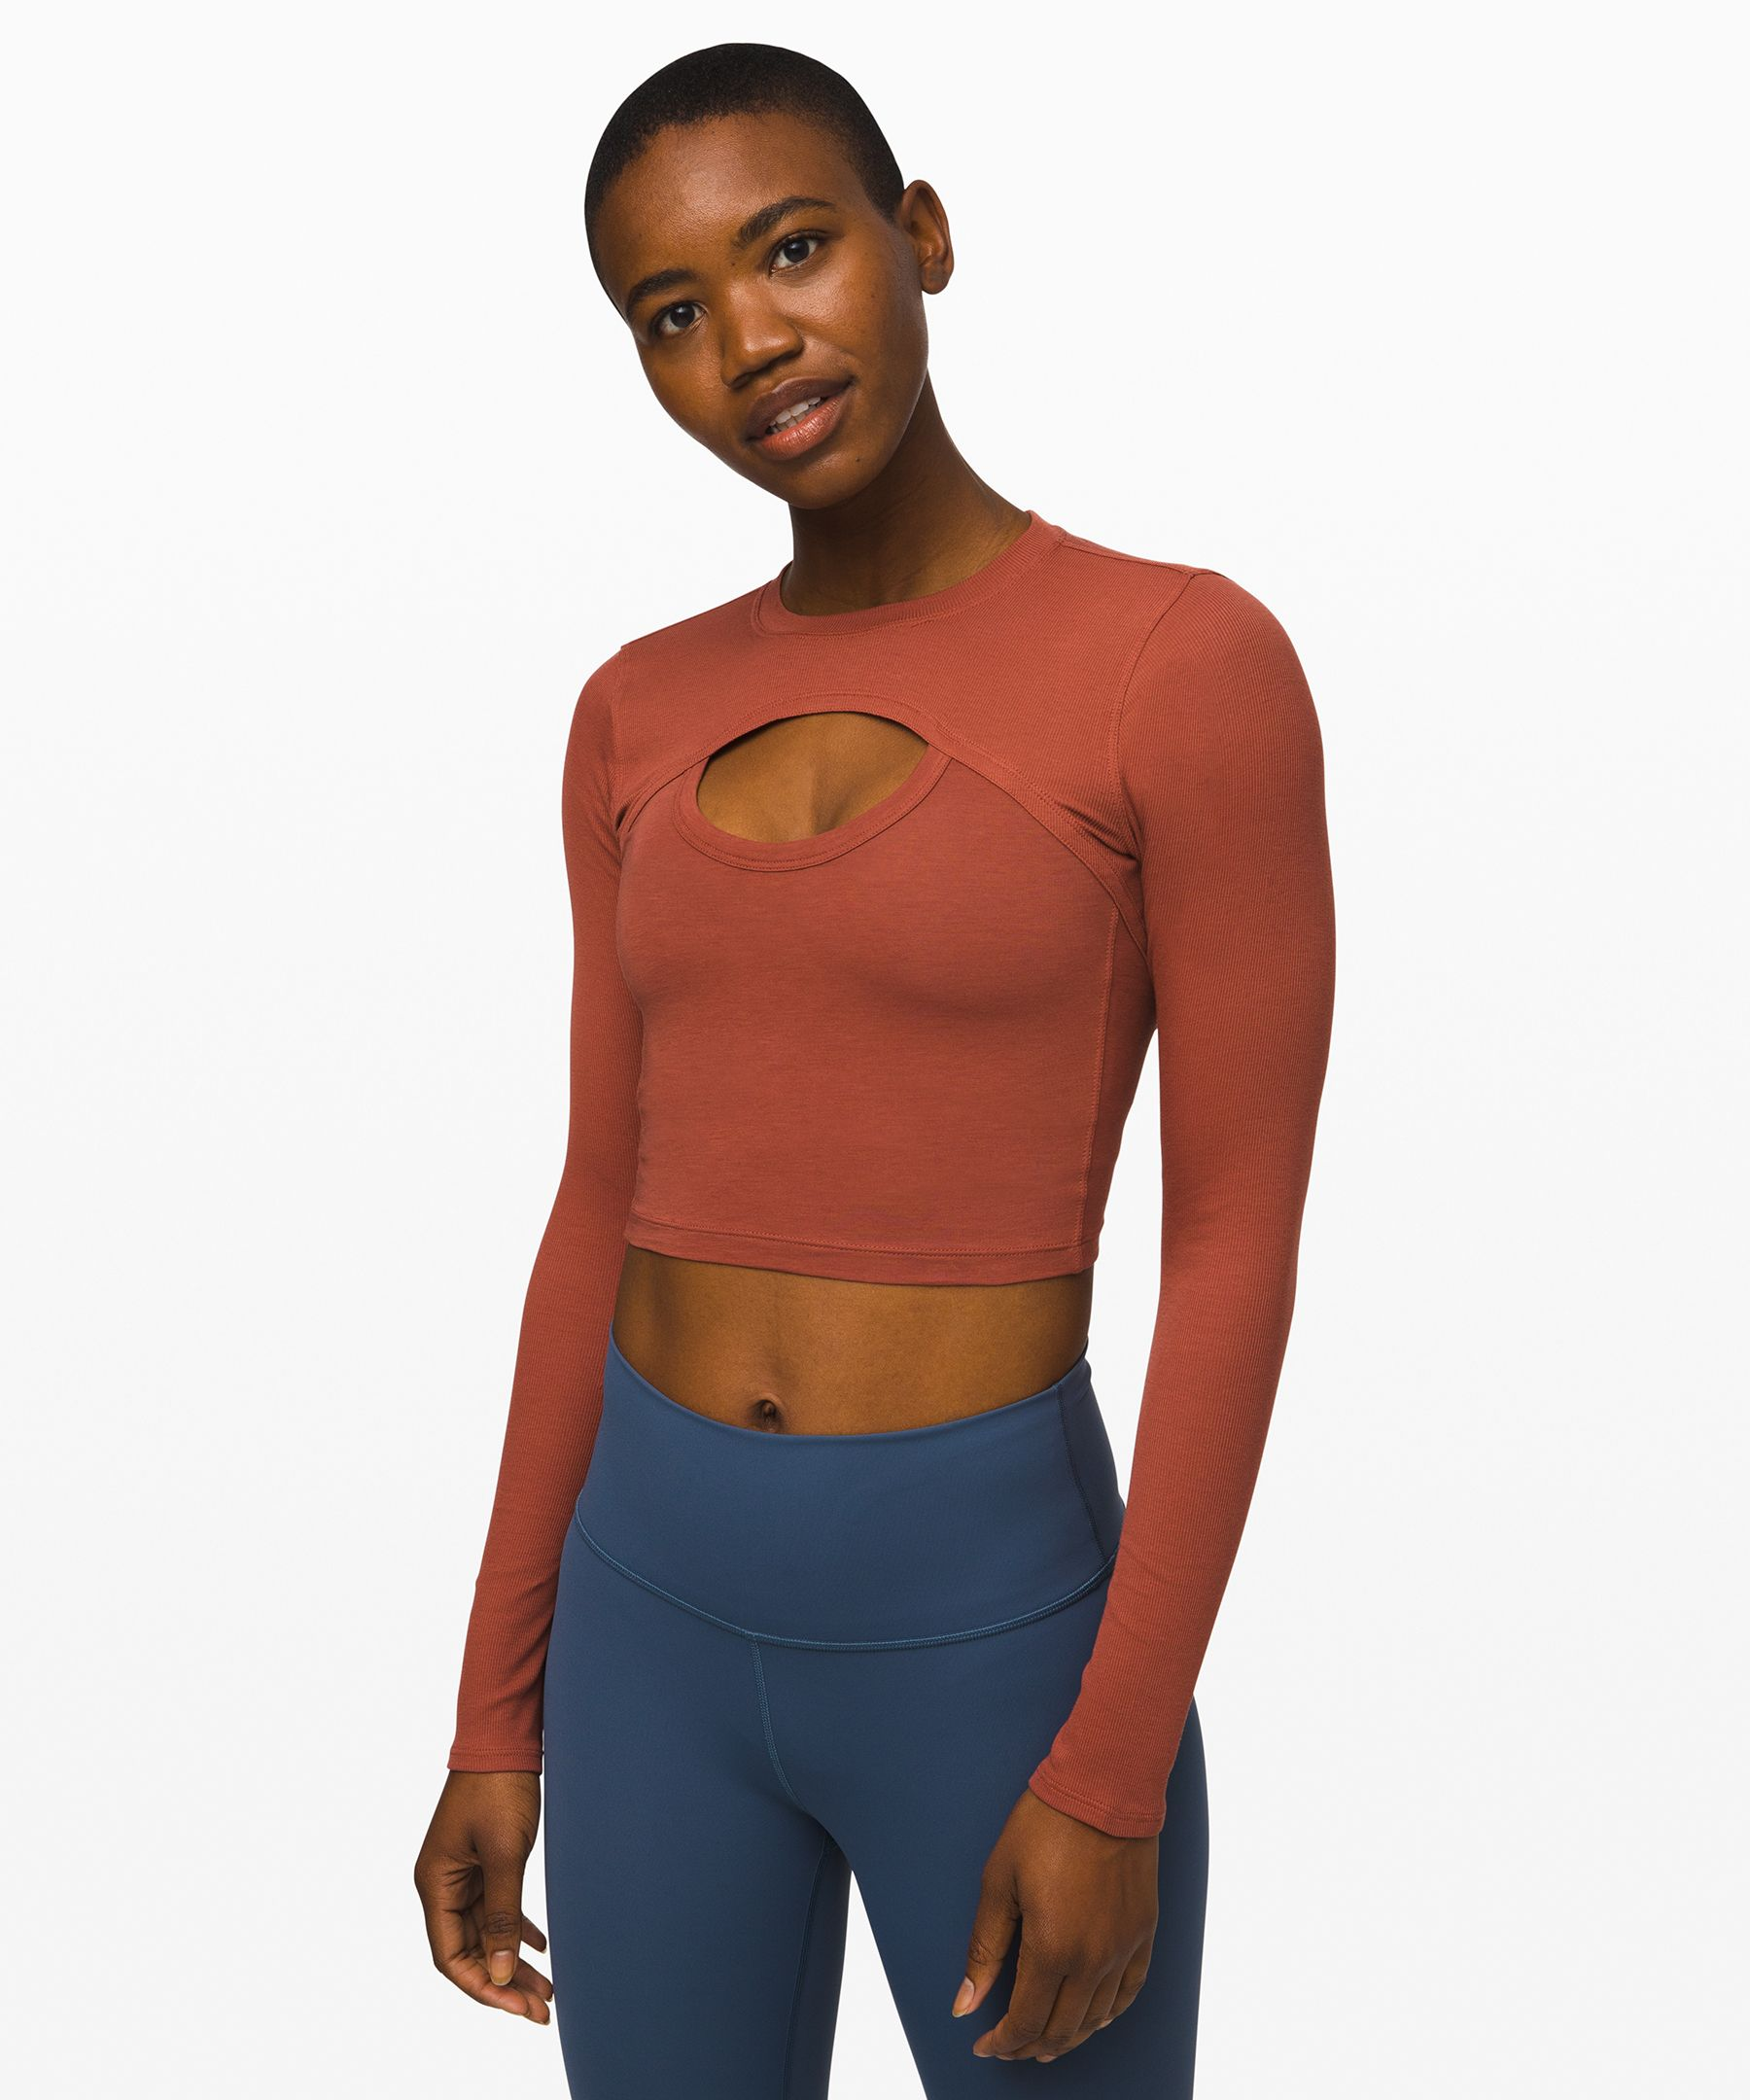 Featuring a keyhole cut out, this top gives you a layered look without the fuss.